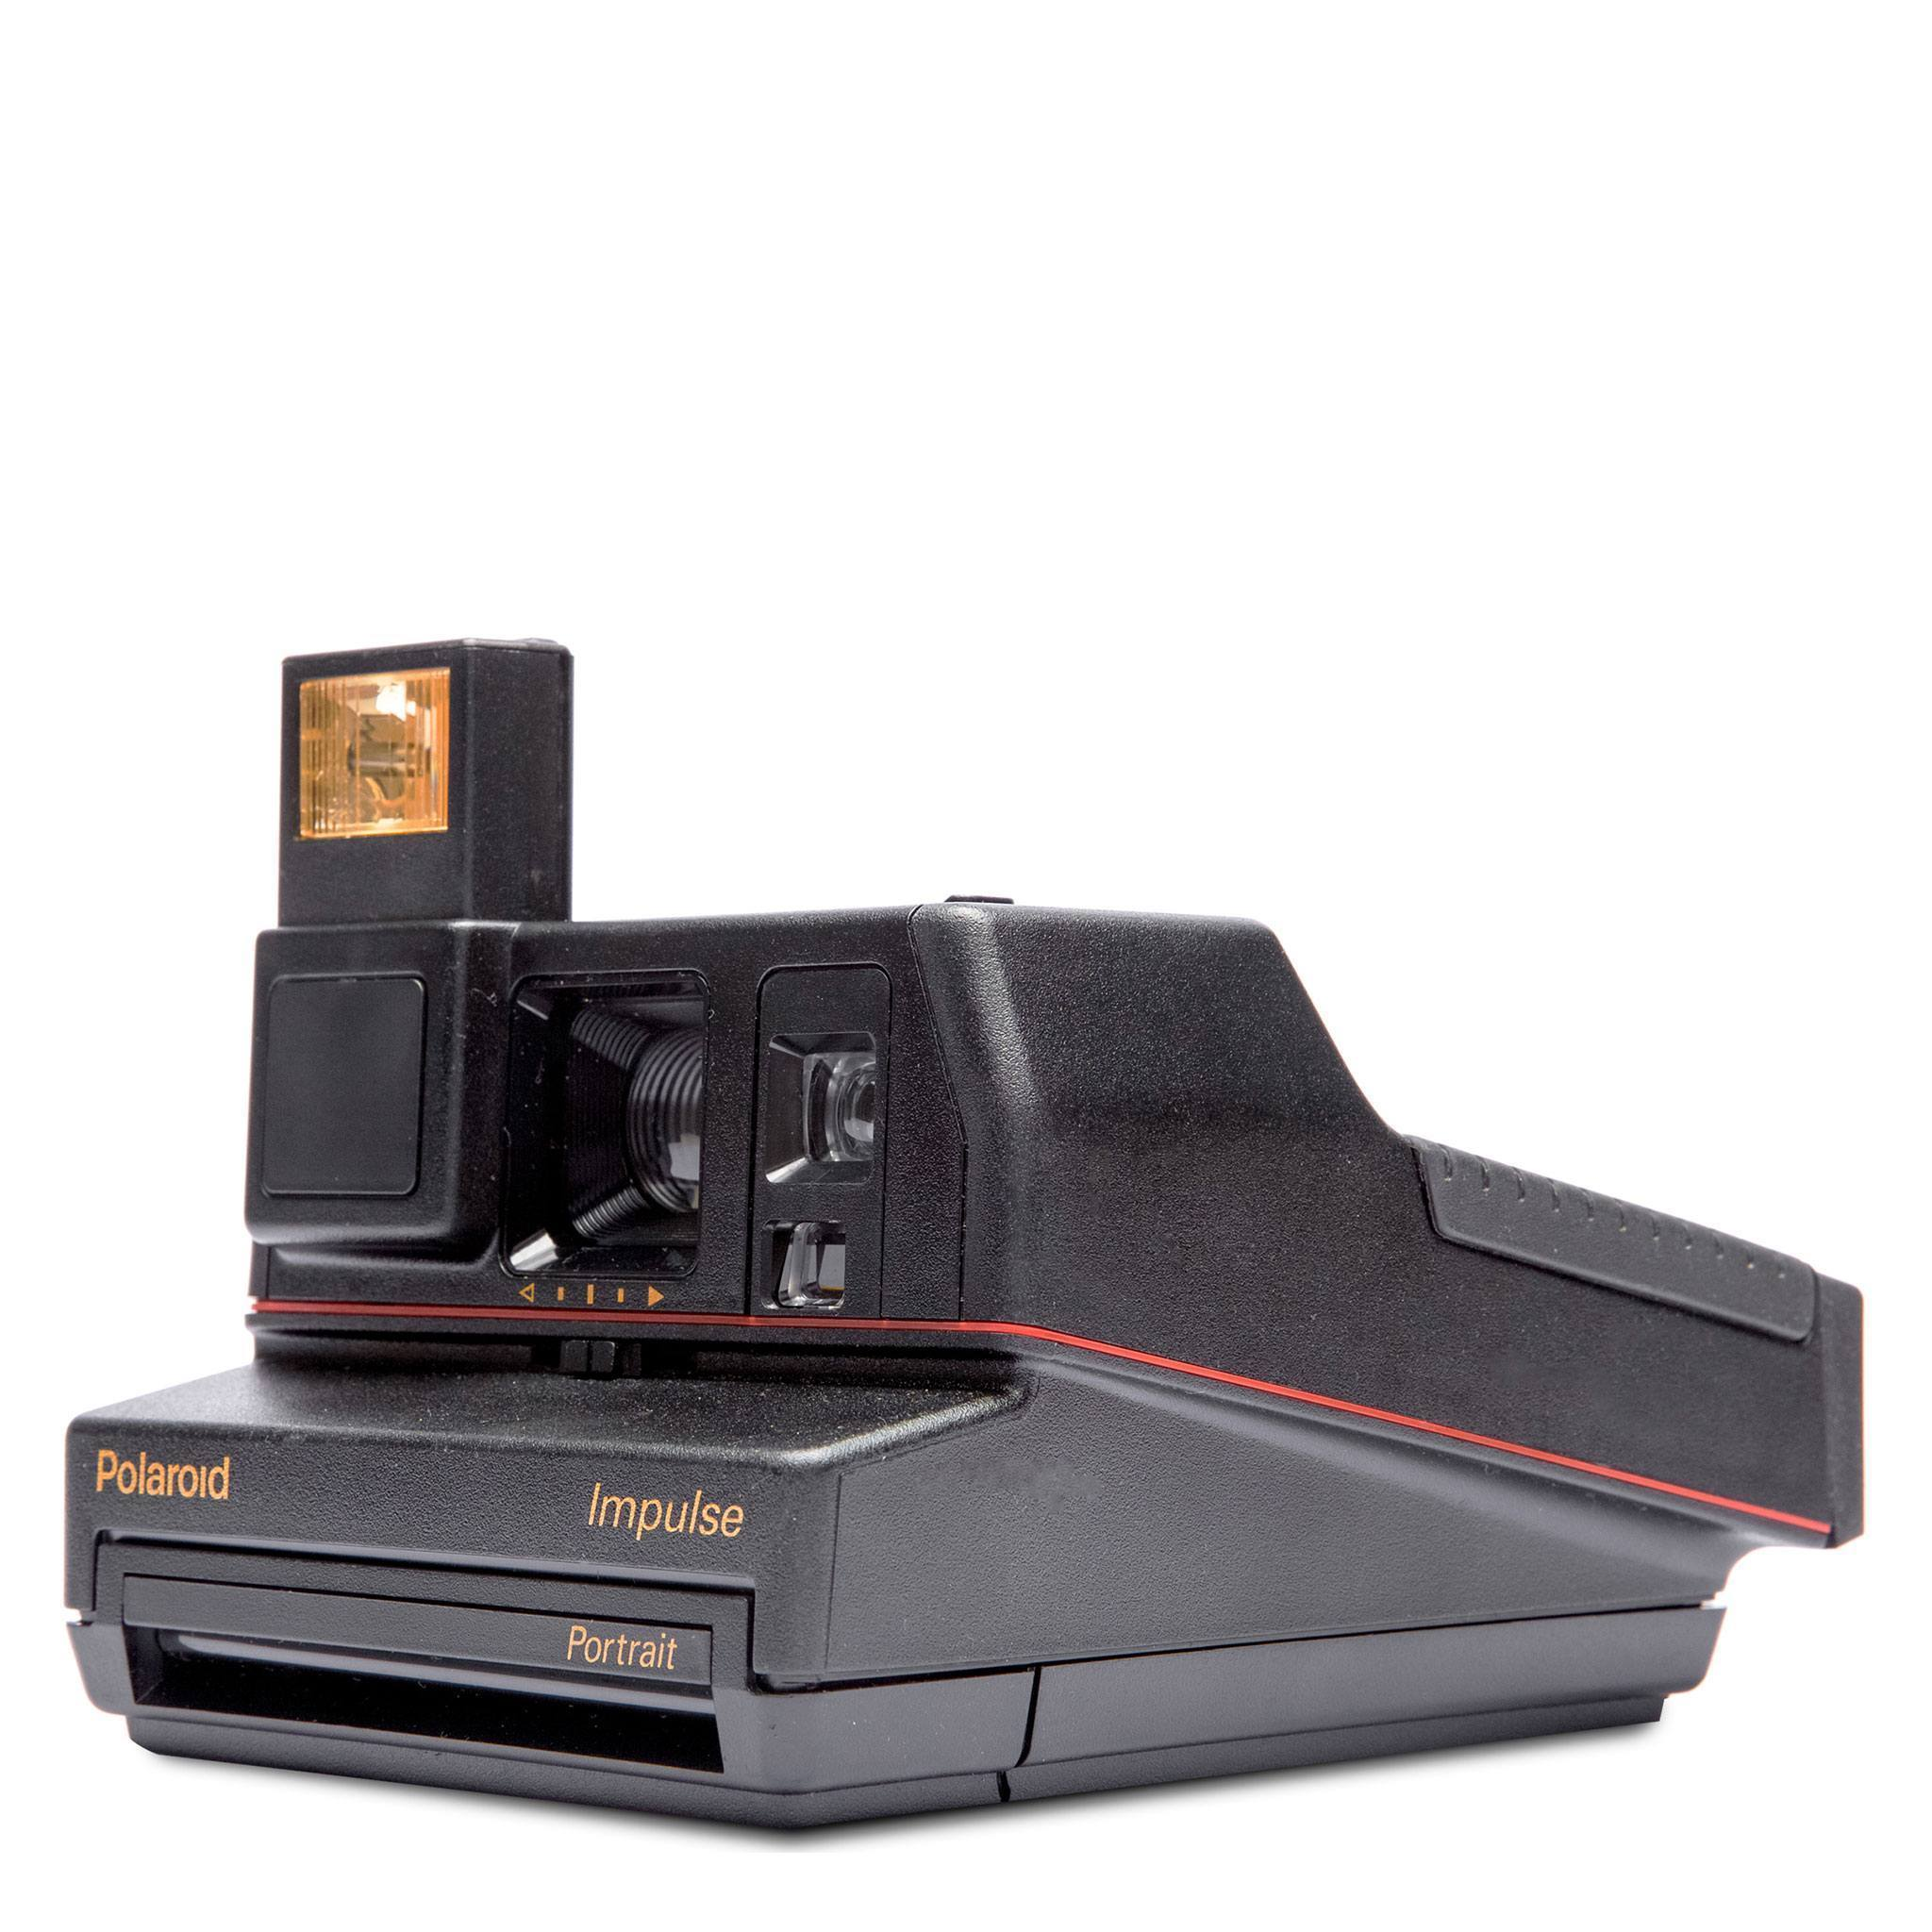 polaroid-600-camera-impulse-004706-angle.jpg